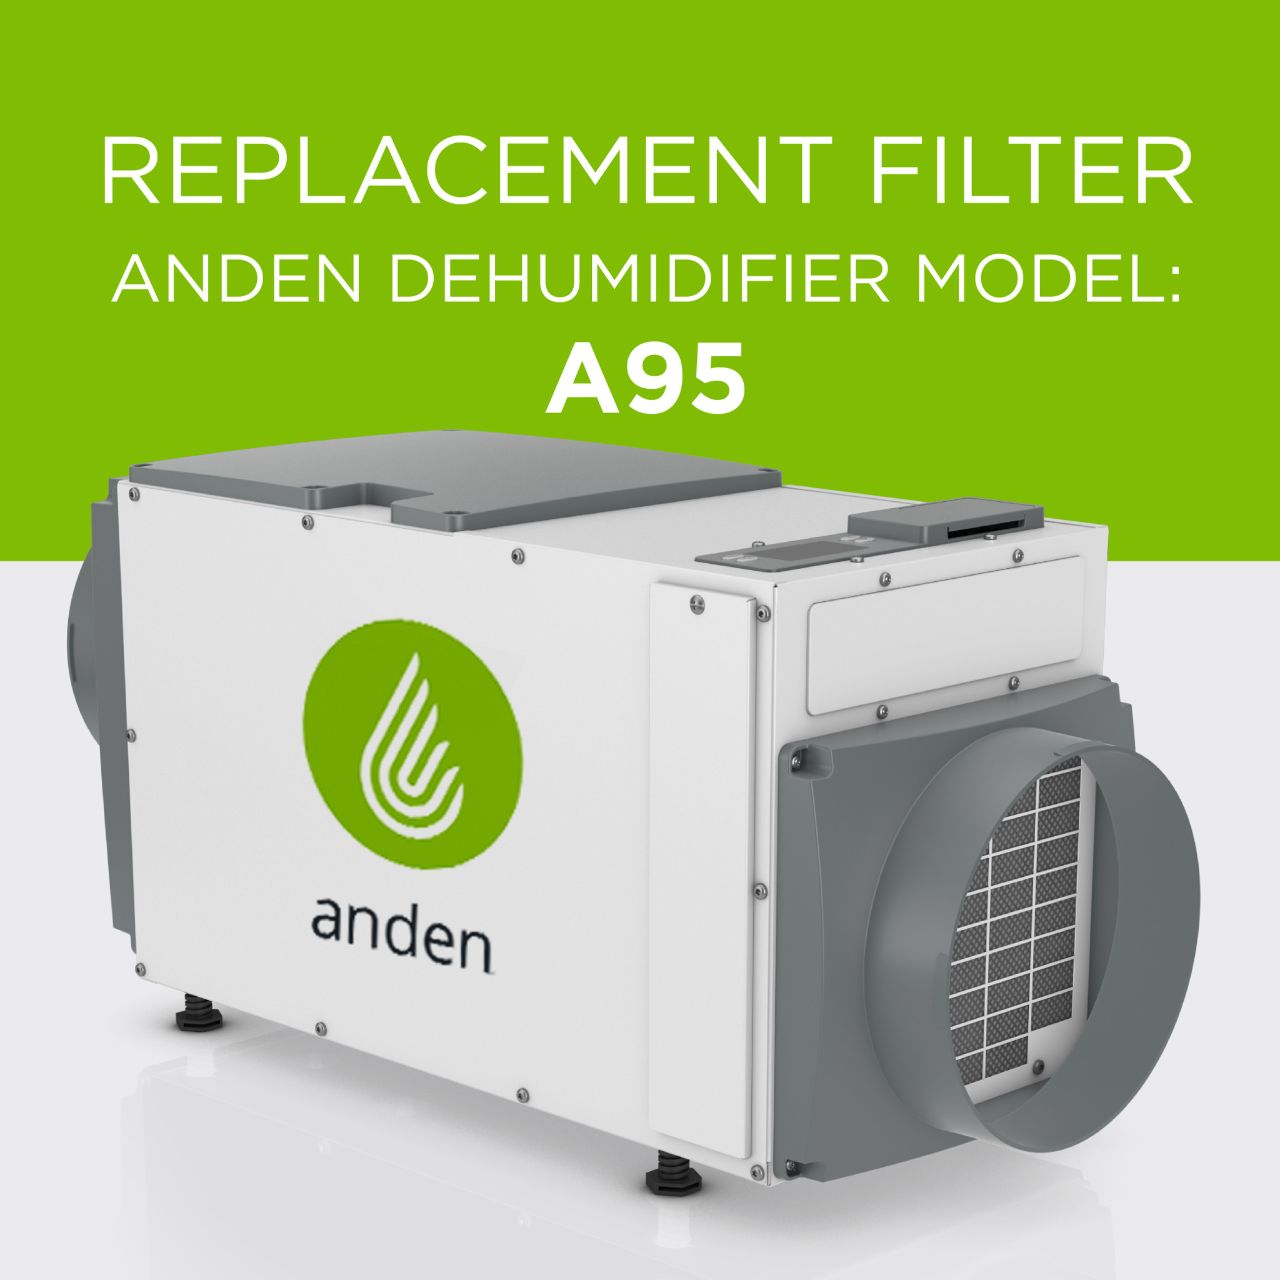 Anden-Model-A95-Replacment-Synthetic-Air Filter-Dehumidifier